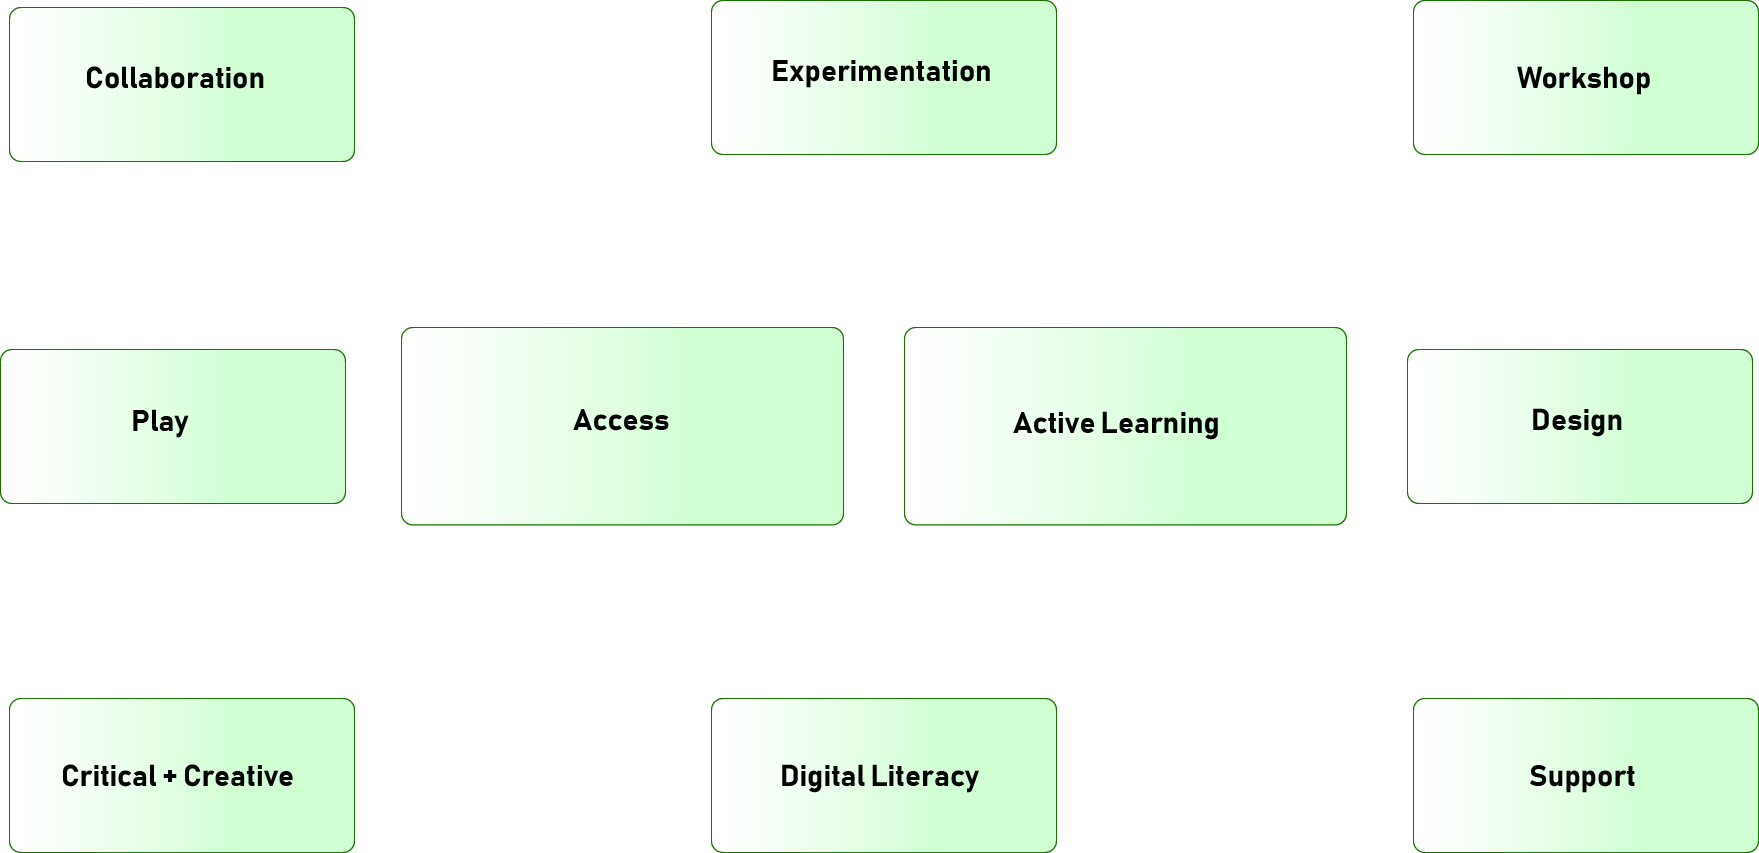 "FYW's WAT Studio pedagogy revolves around ""access"" and ""active learning."" Other core values of studio pedagogy include collaboration, experimentation, workshop, play, design, critical + creative work, digital literacy, and support."